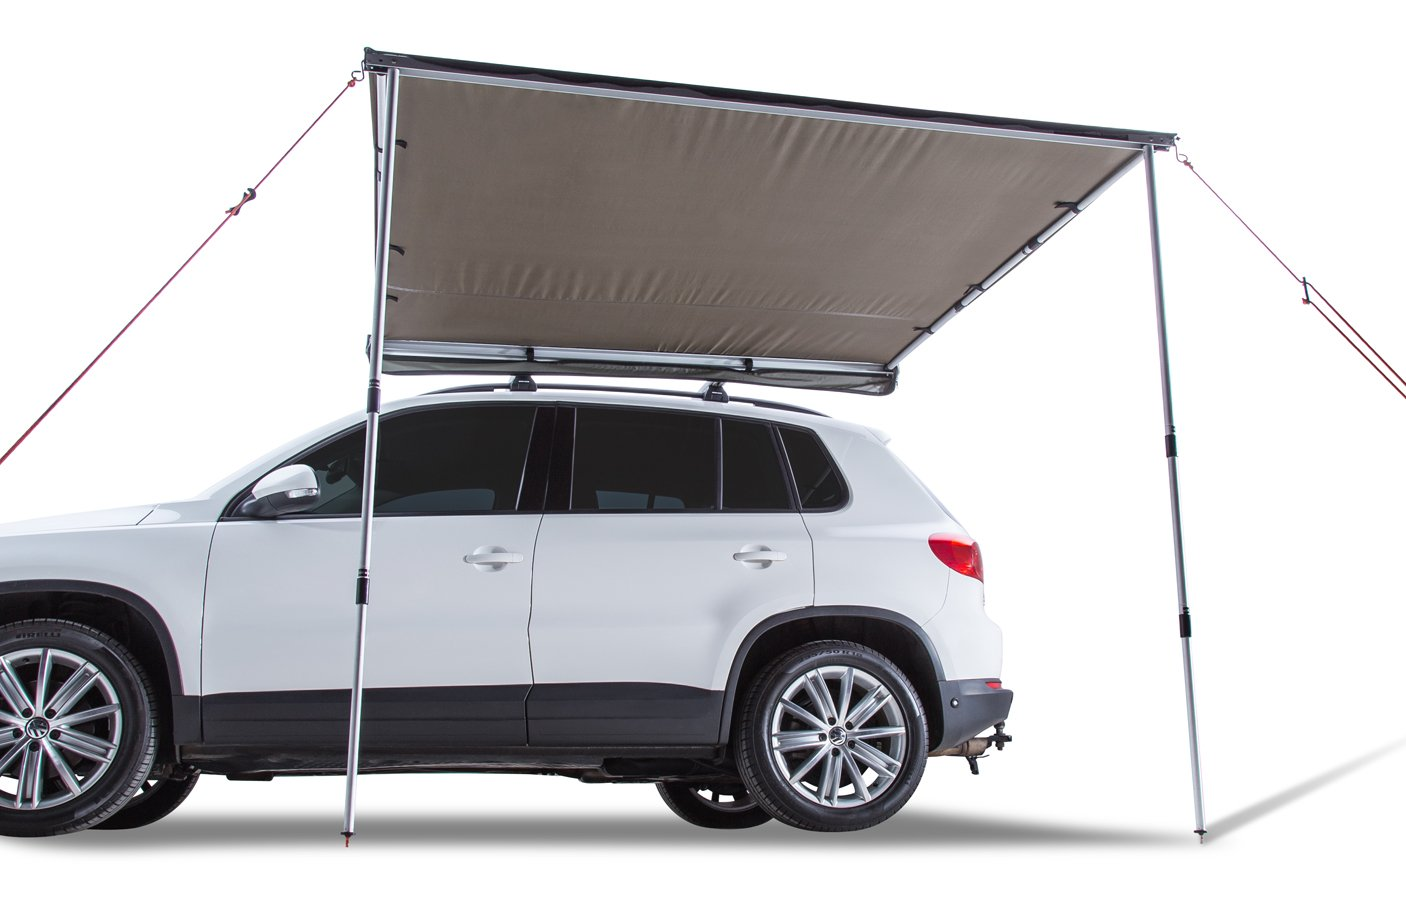 Rhino Rack Sunseeker Canopies and Awnings, Outdoor Awning